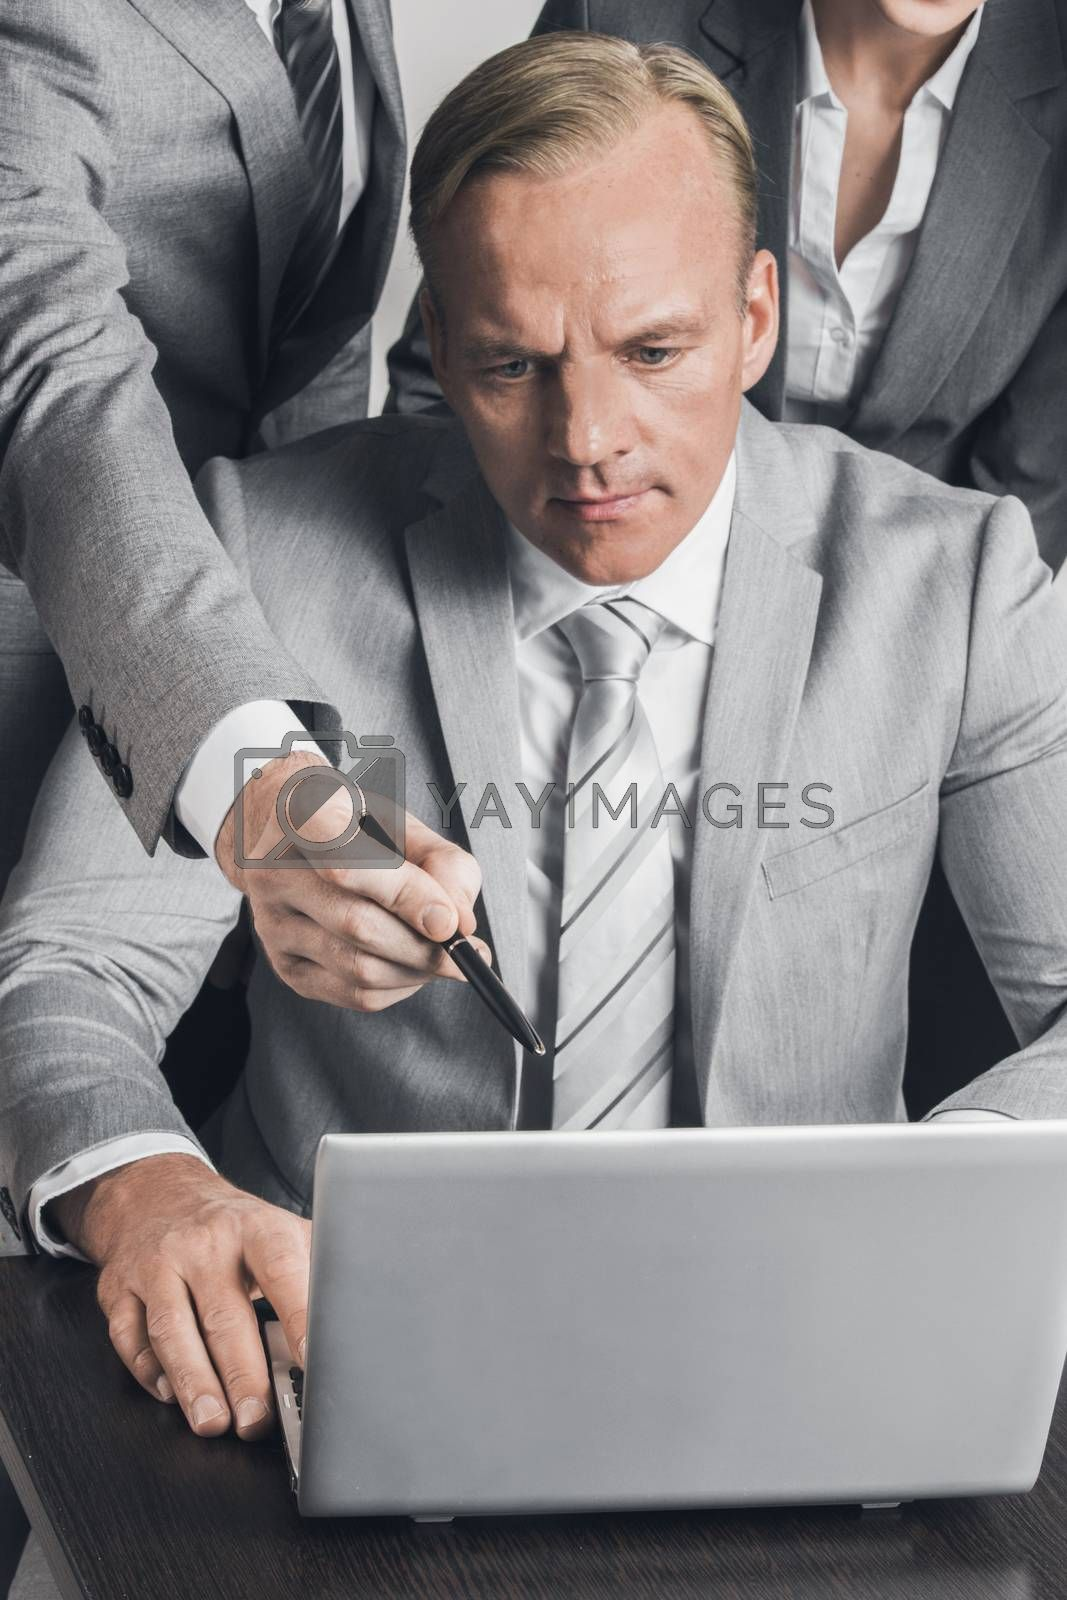 Group of business people working together with laptop at meeting